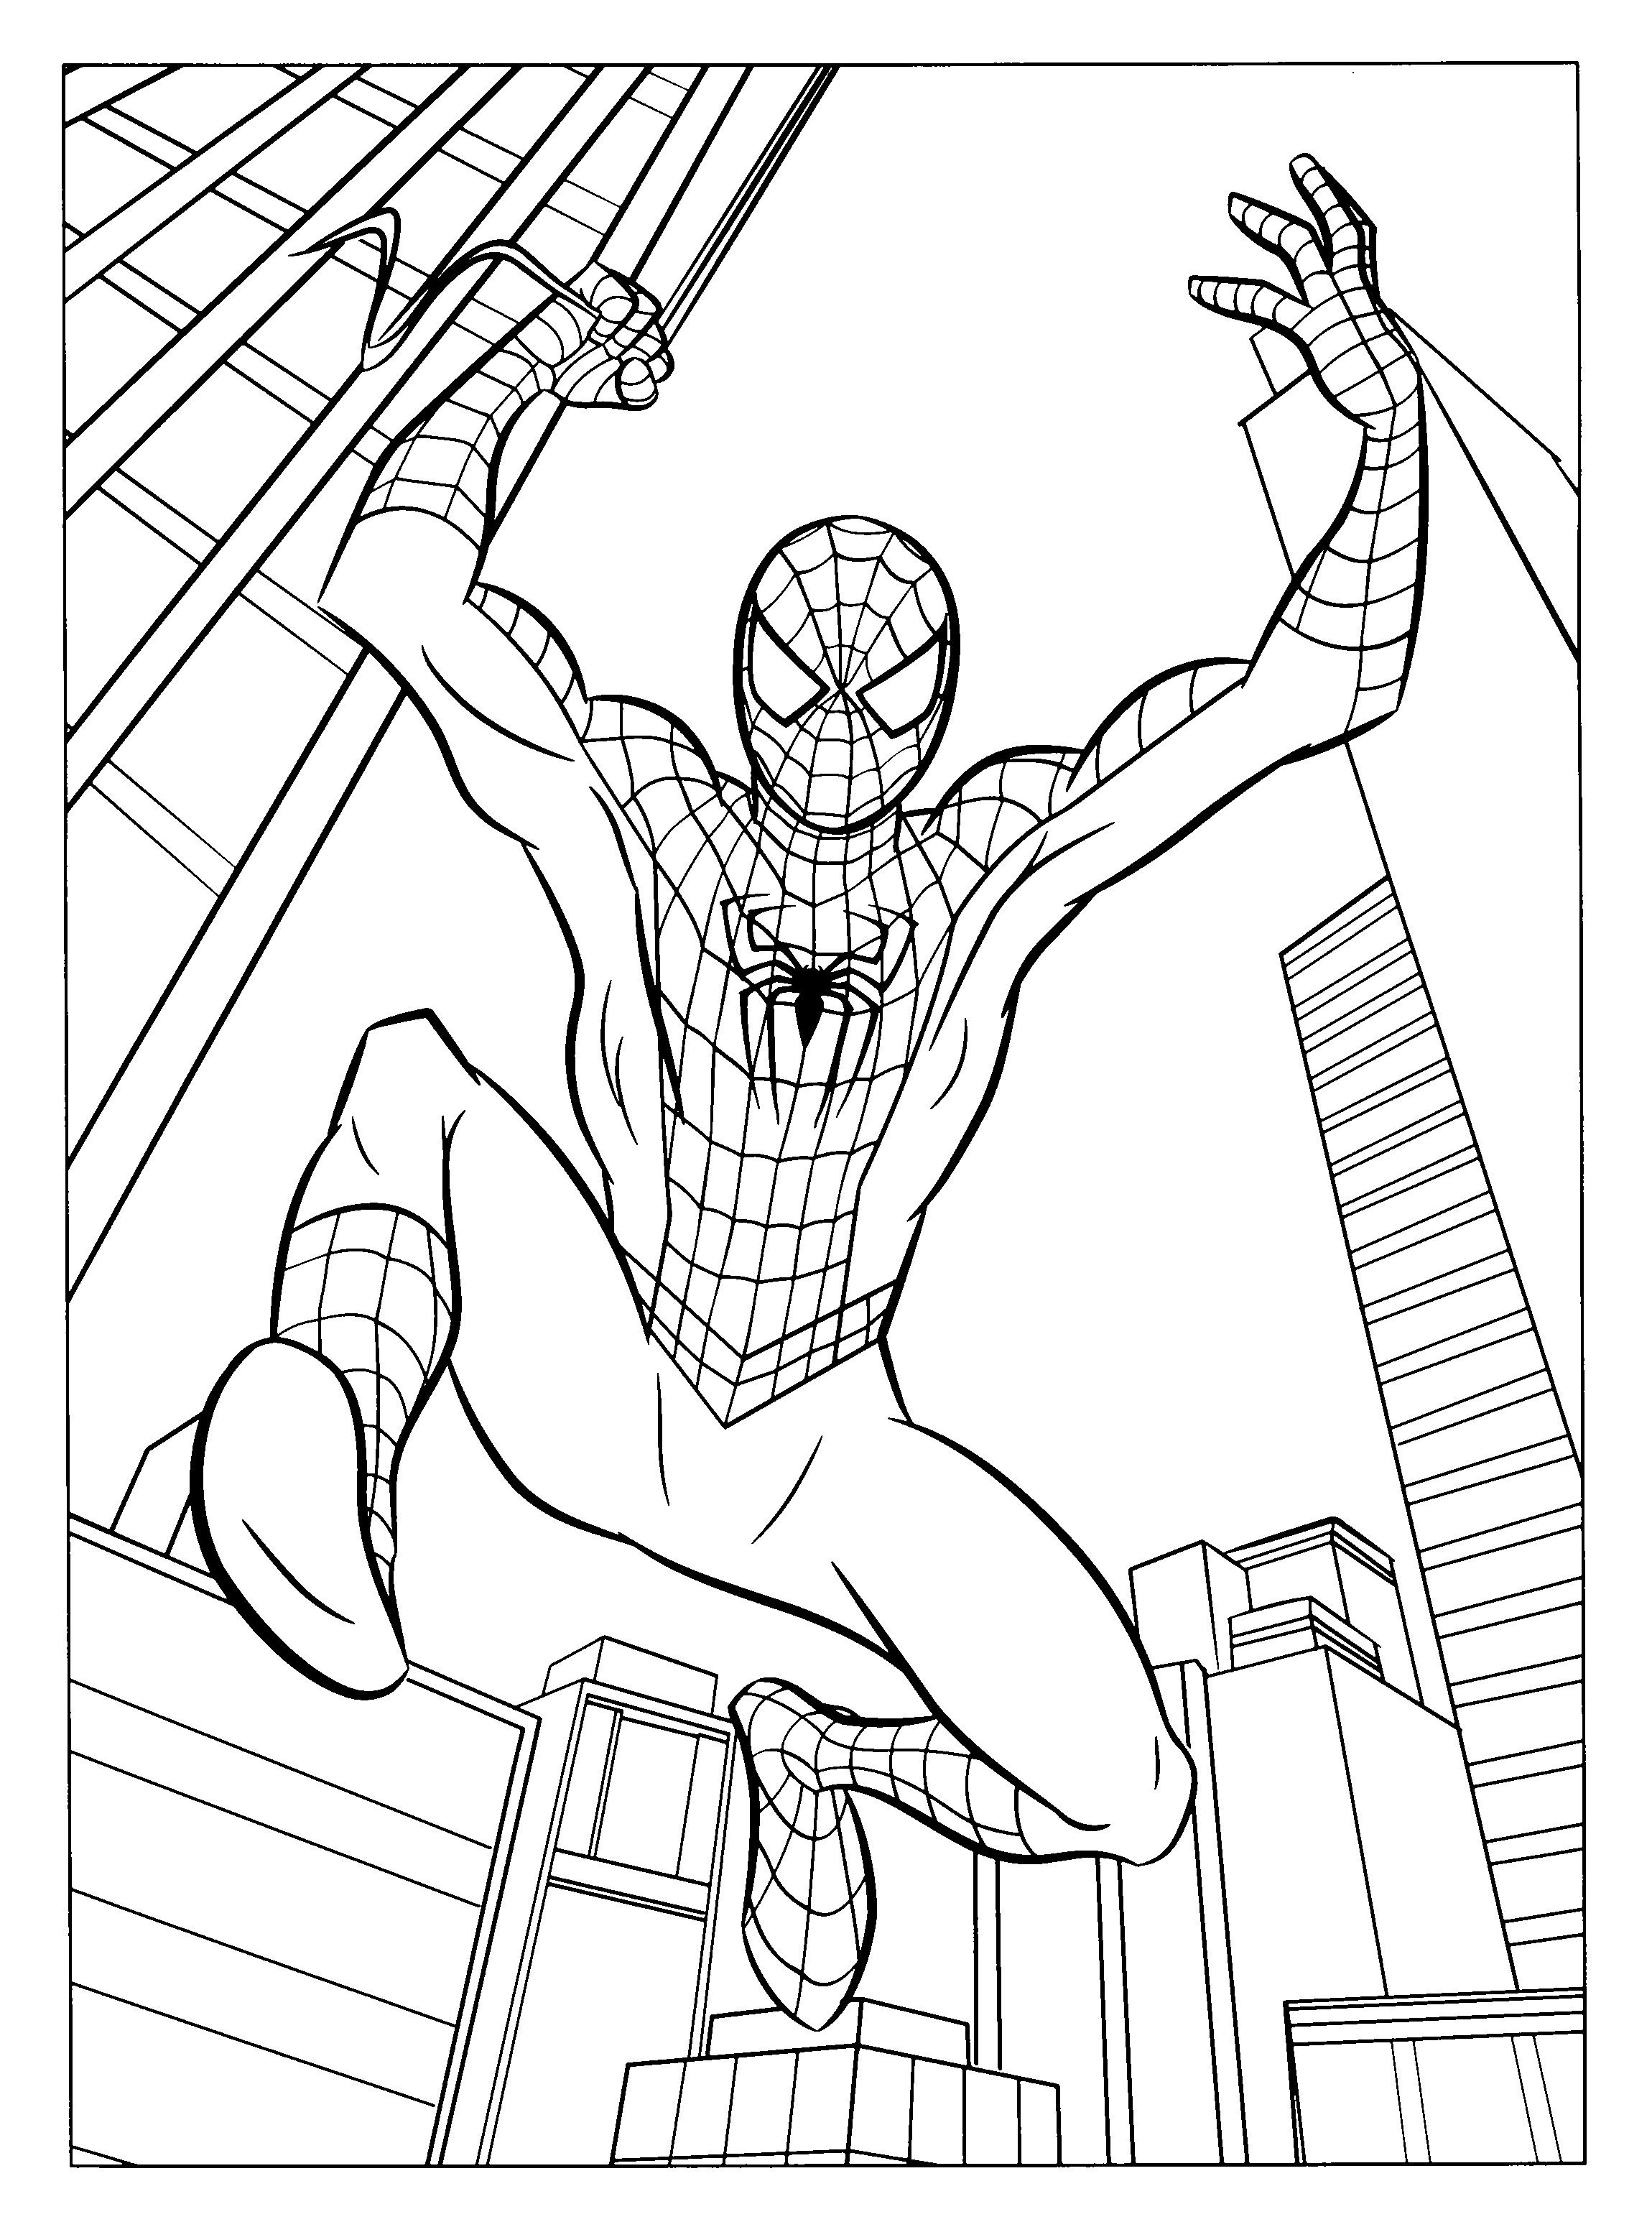 kids coloring pages man - photo#17